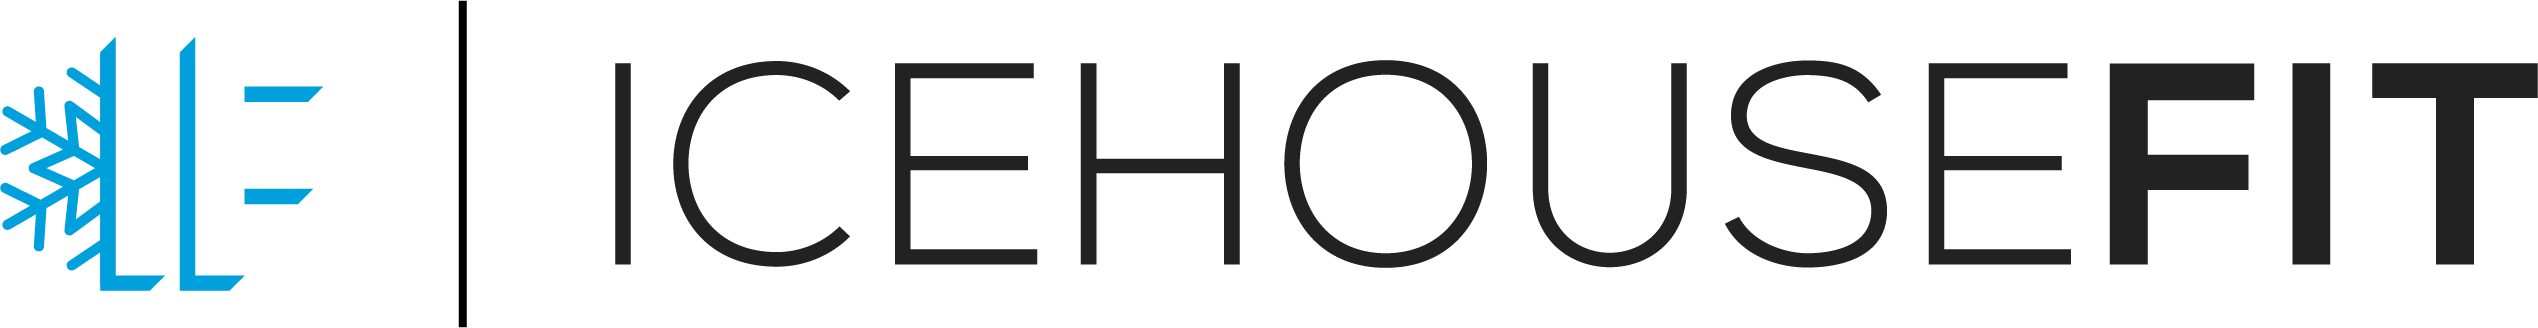 Icehouse Fit logo